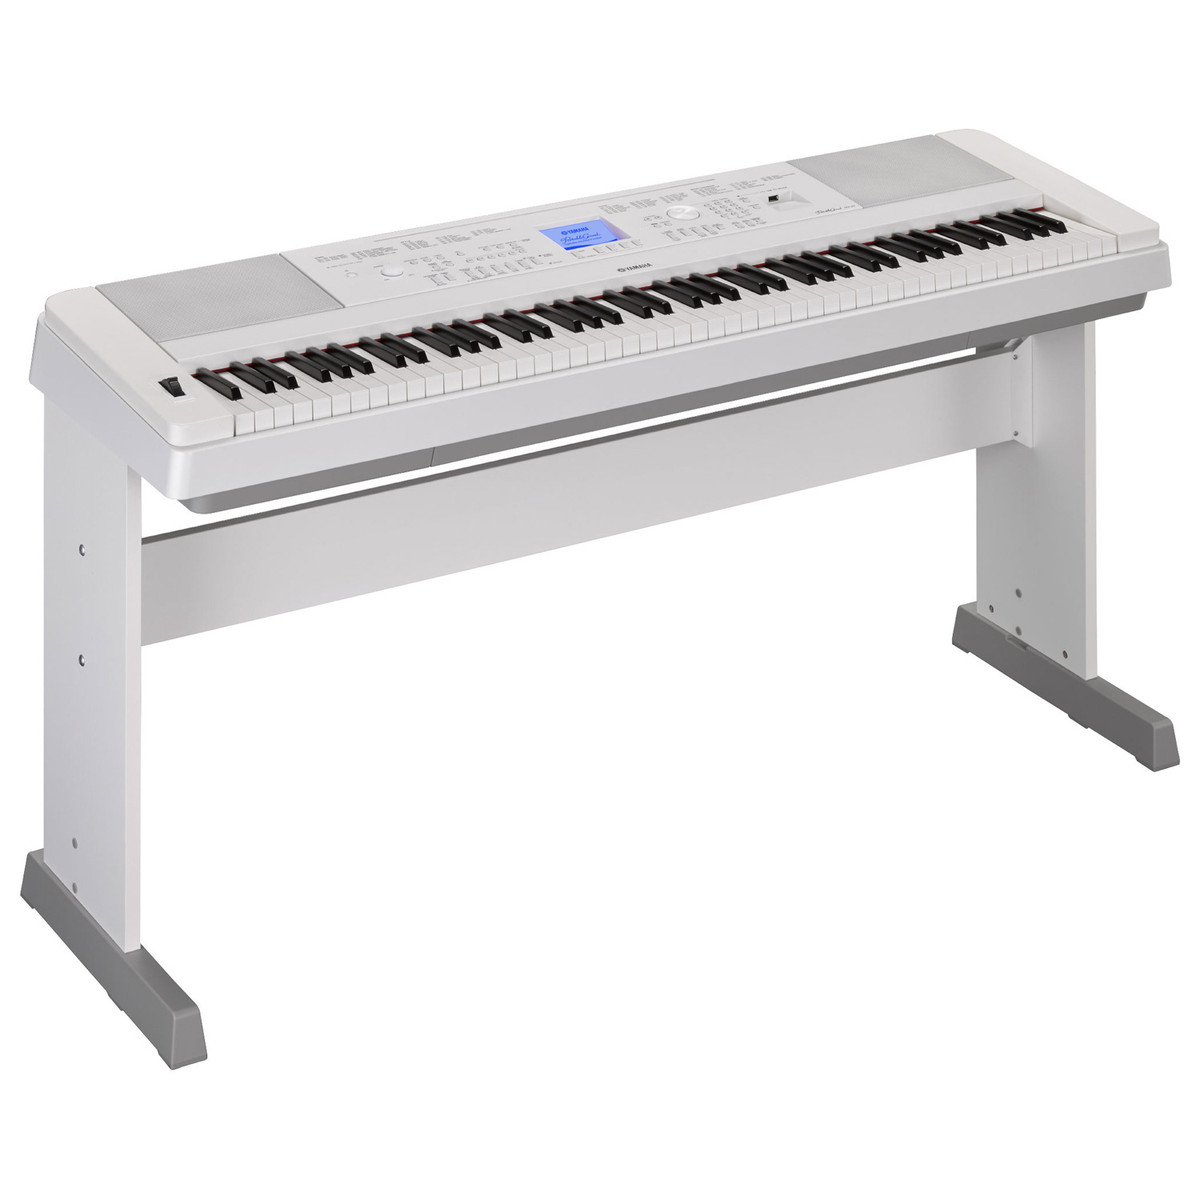 yamaha dgx 660 digital piano with stand white at gear4music. Black Bedroom Furniture Sets. Home Design Ideas